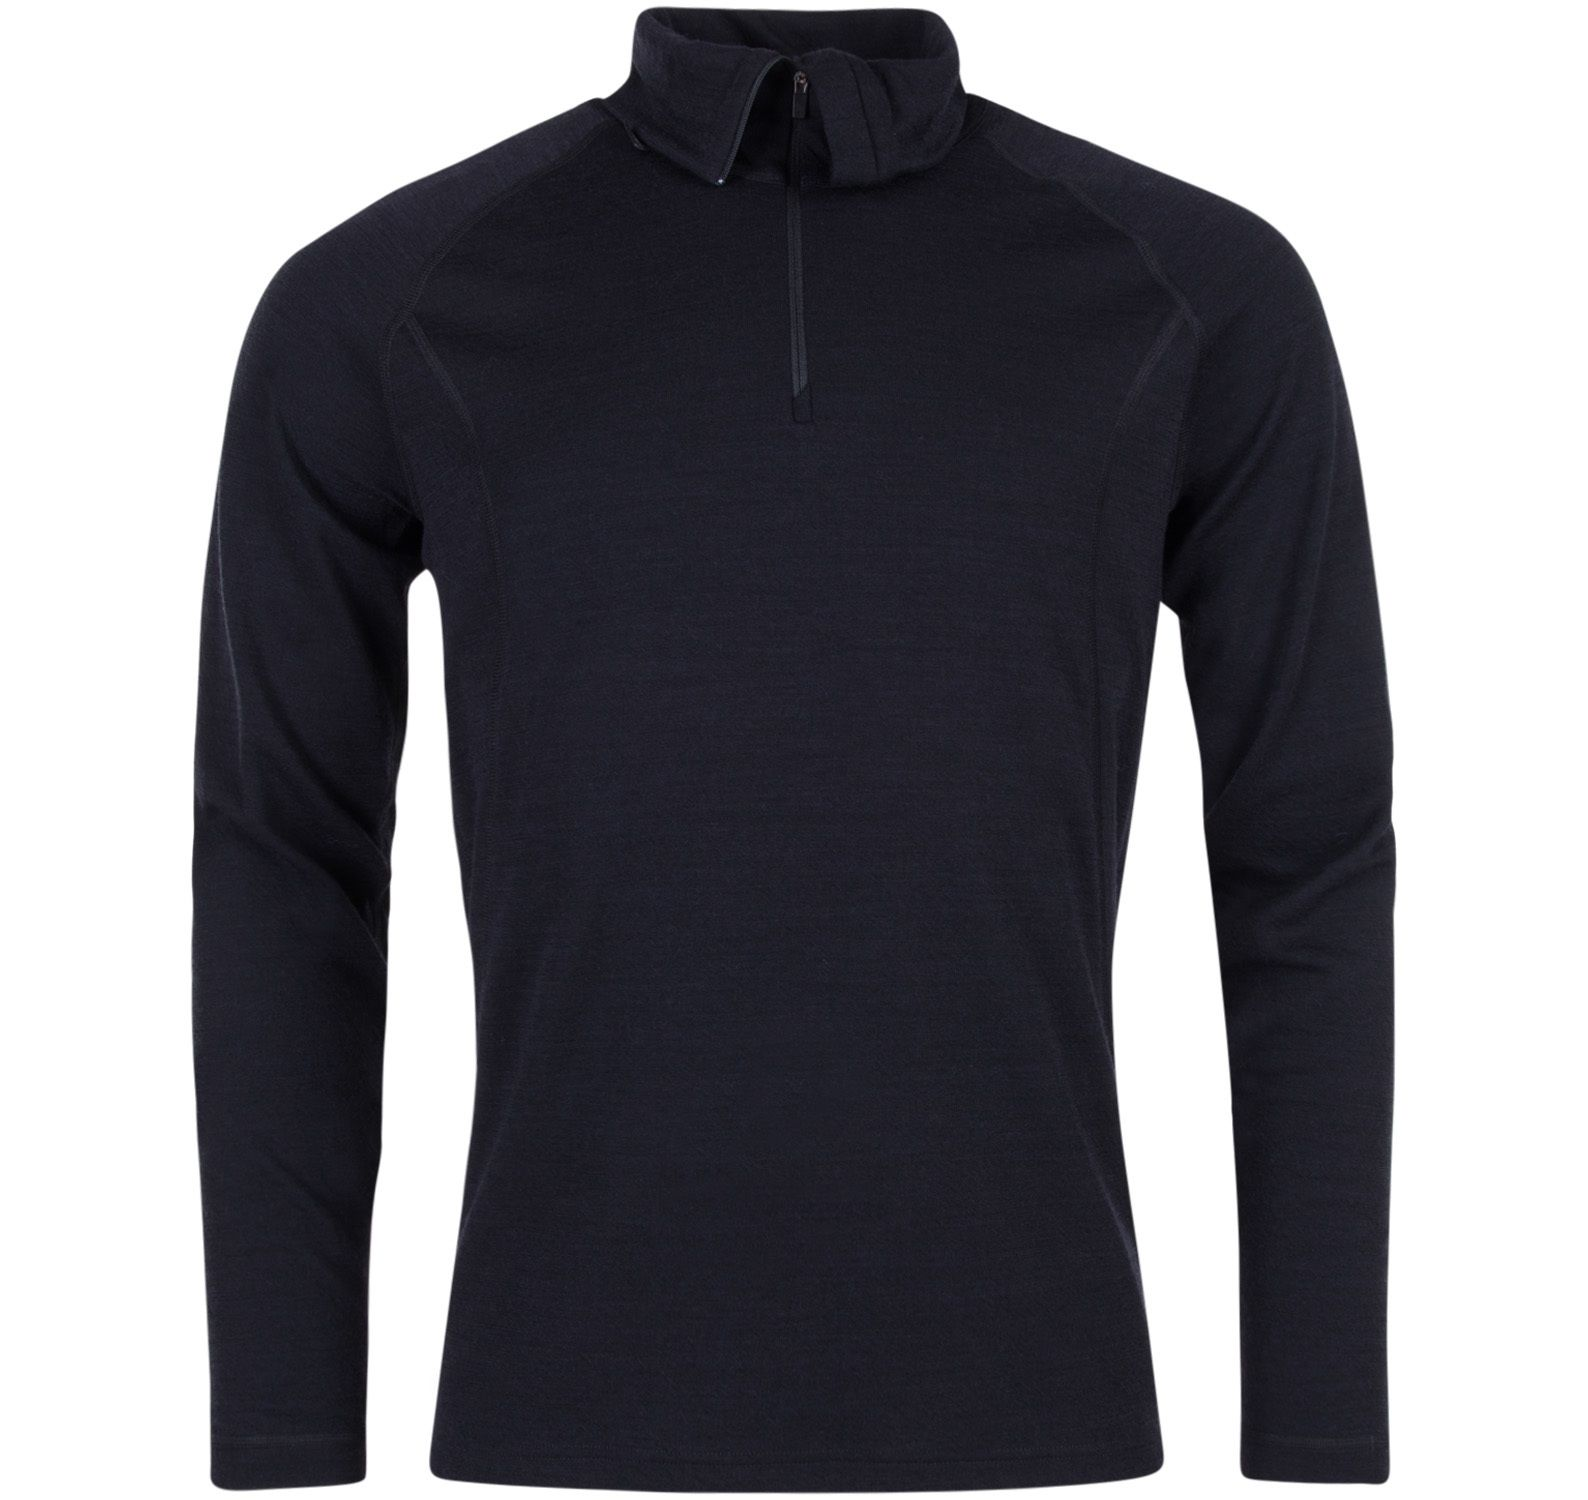 50fifty 2.0 turtle neck w/zip, black/black, s,  ulvang ulltröjor